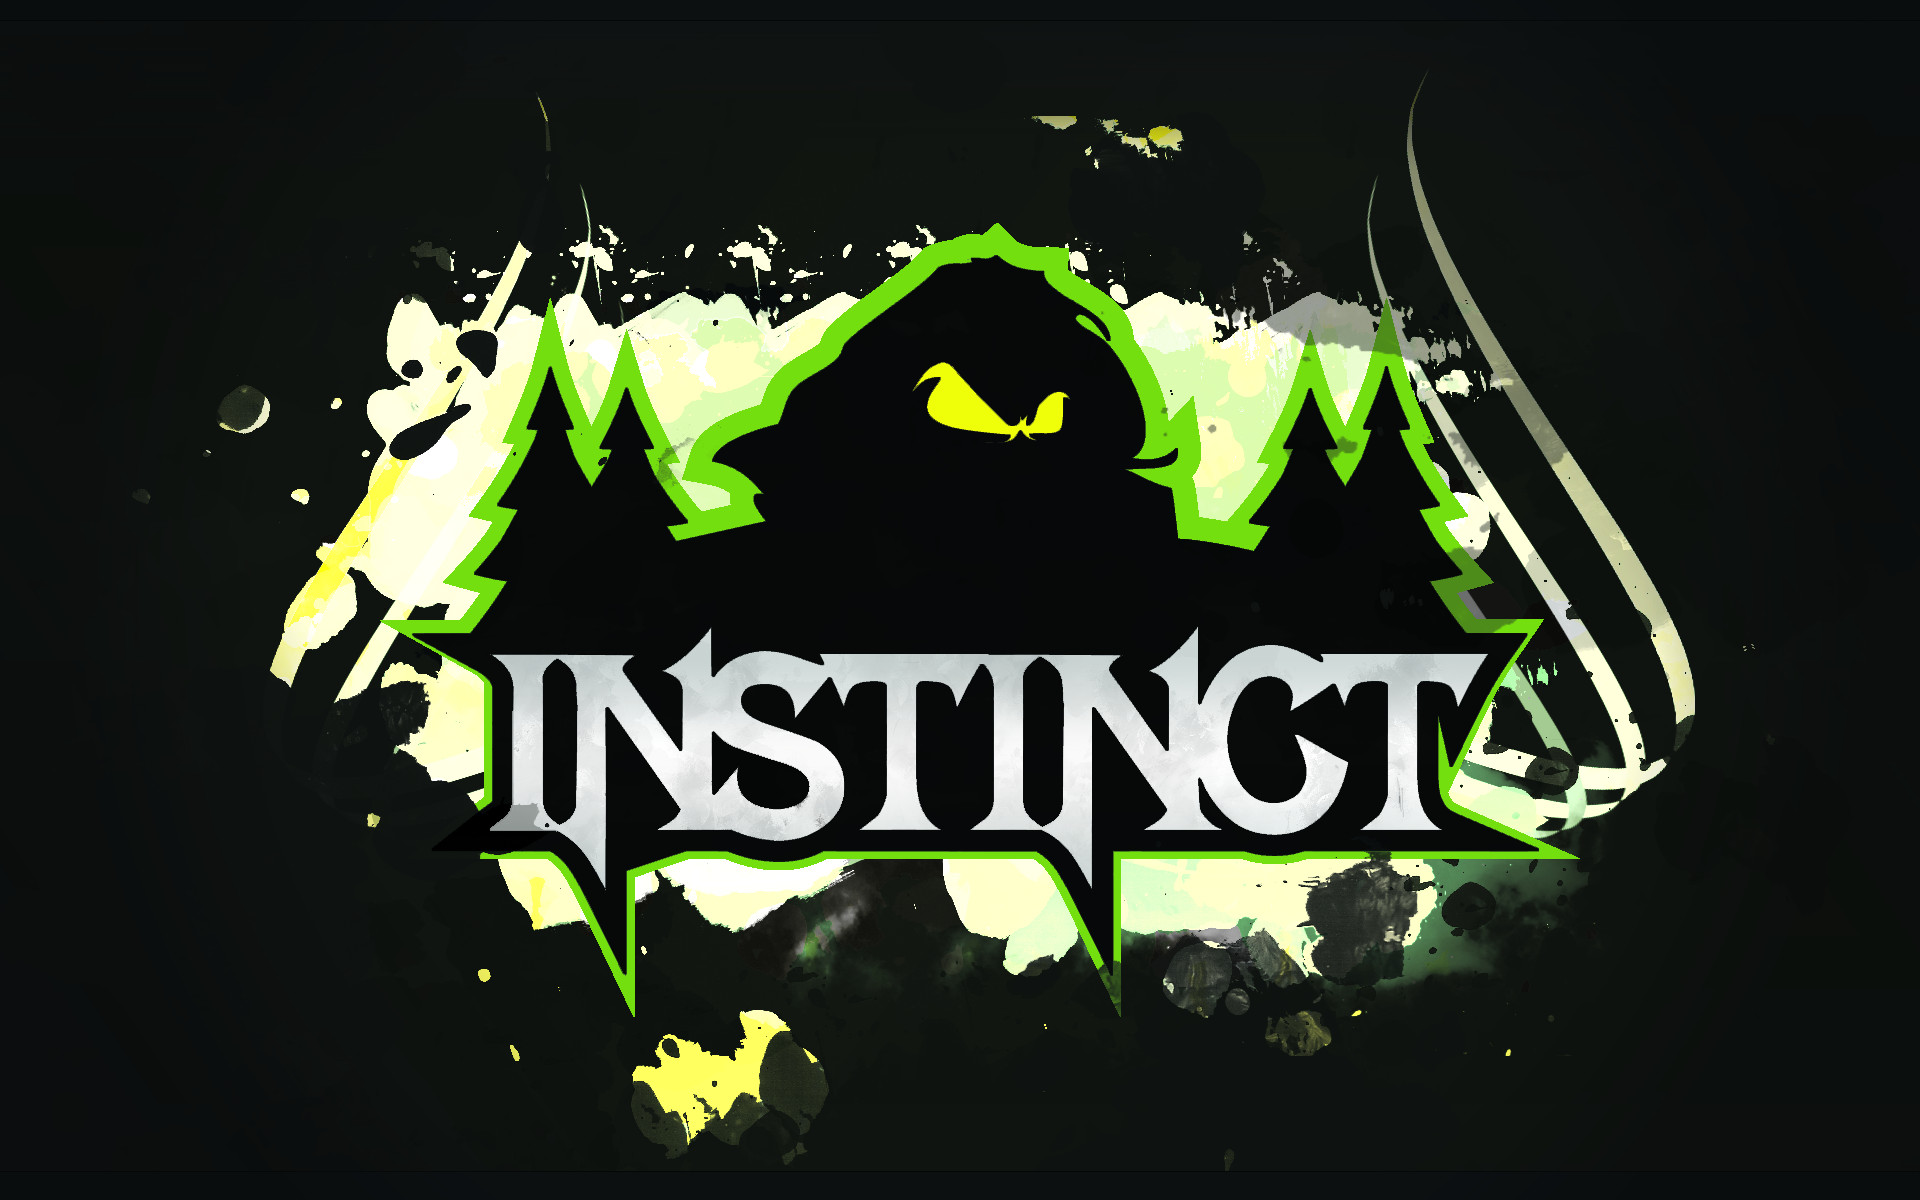 Image Instinct Mlg Saver Wallpapers And Stock Photos